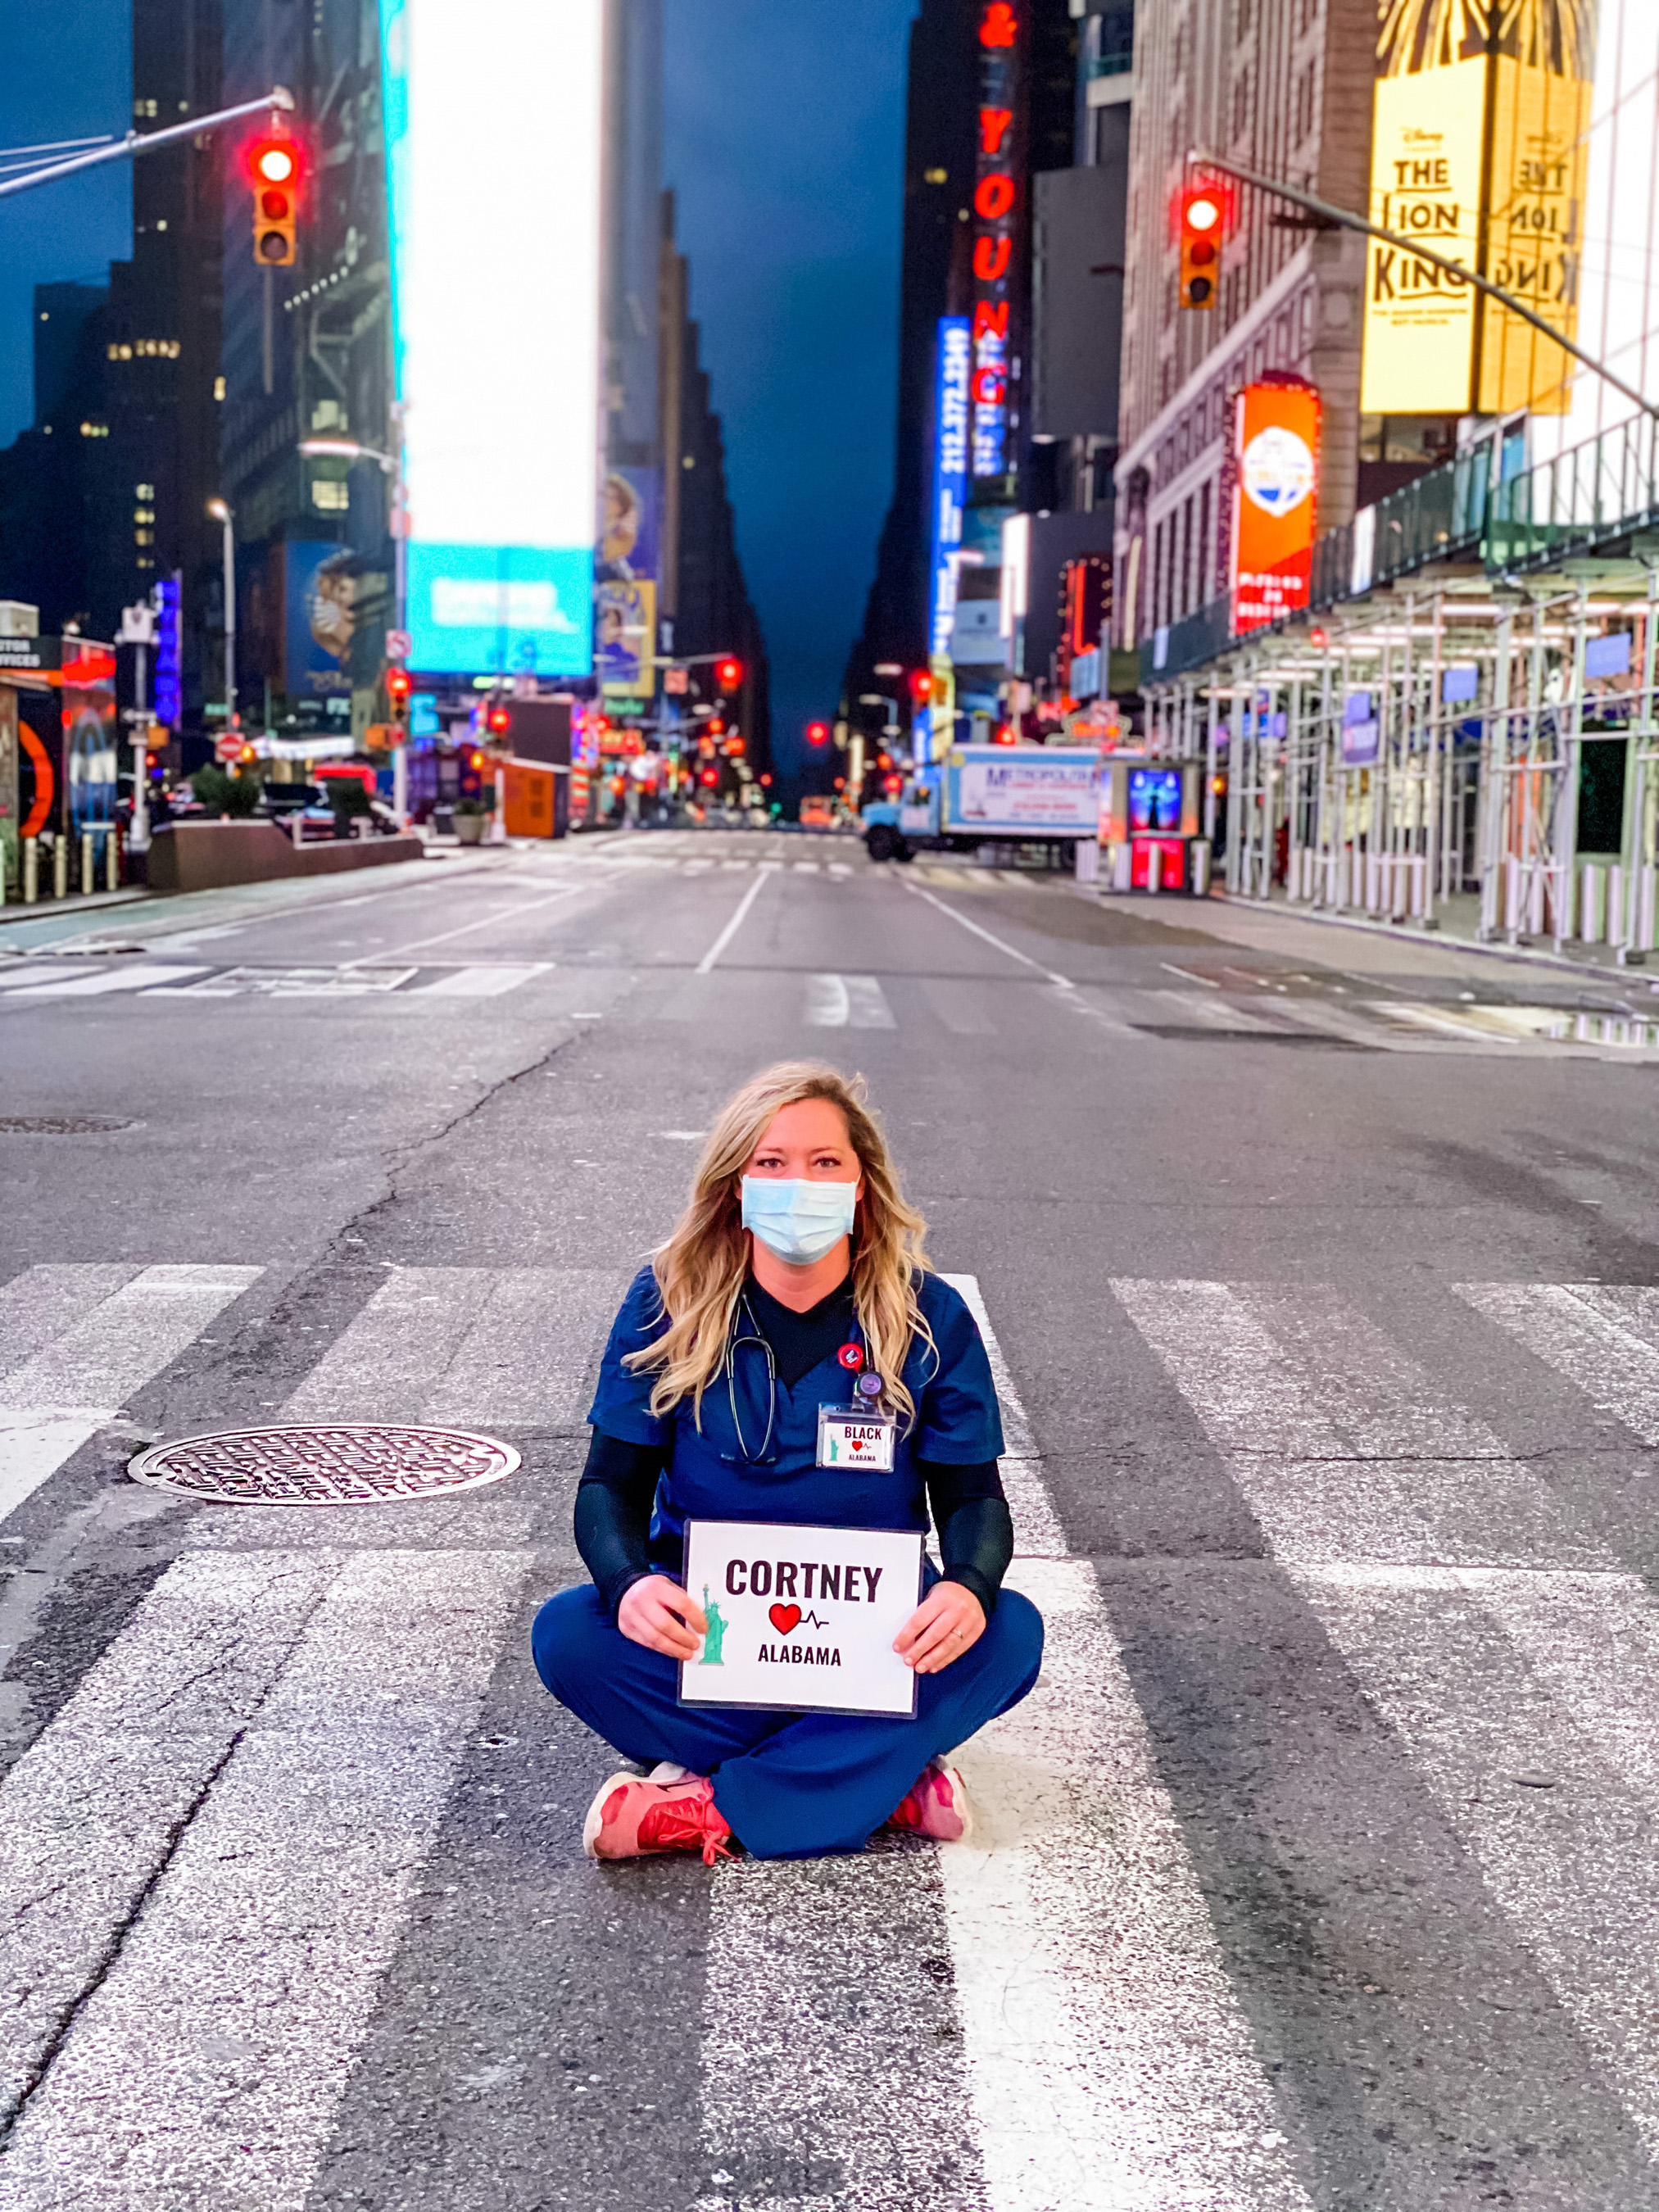 Cortney Black, a 2016 alumna of the Auburn University School of Nursing, received permission from her Anniston, Alabama, ER to spend 21 days helping in New York.